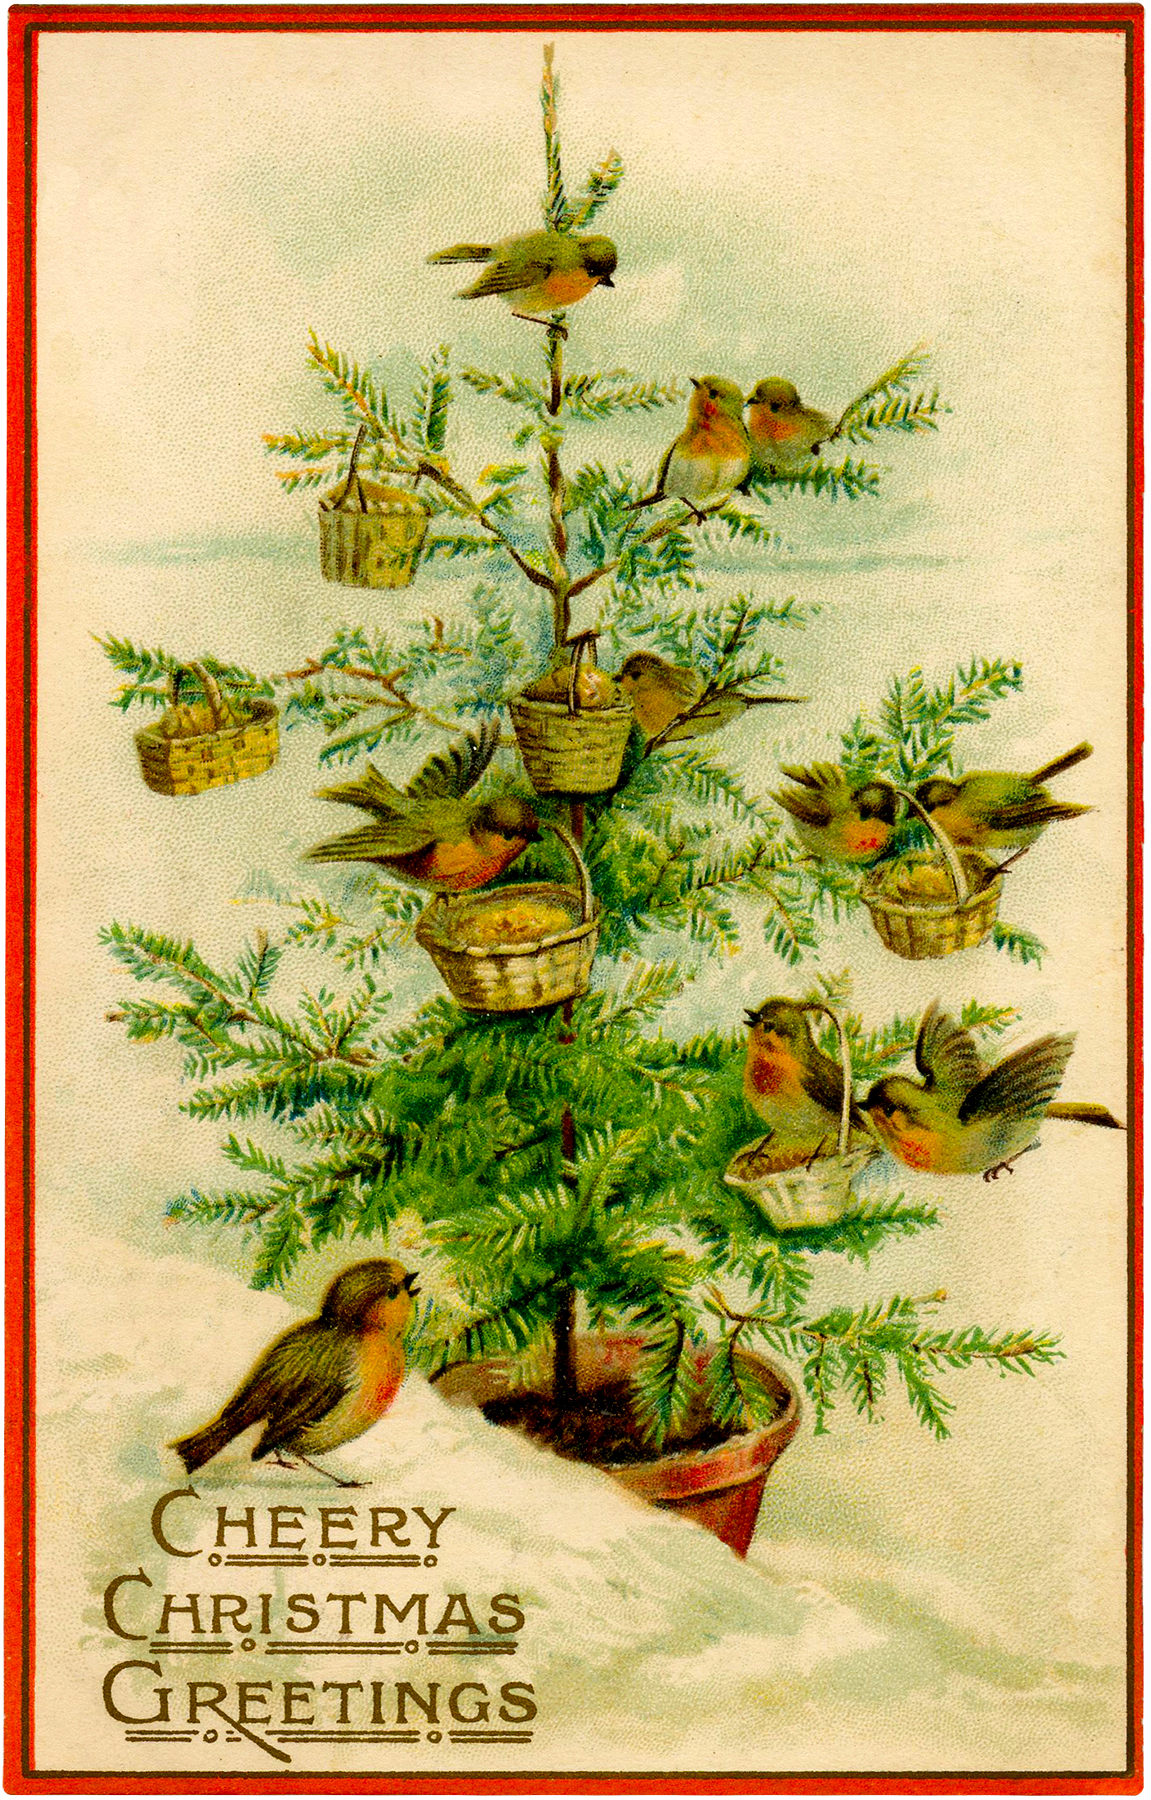 Vintage Birds Christmas Tree Image - Charming! - The ...